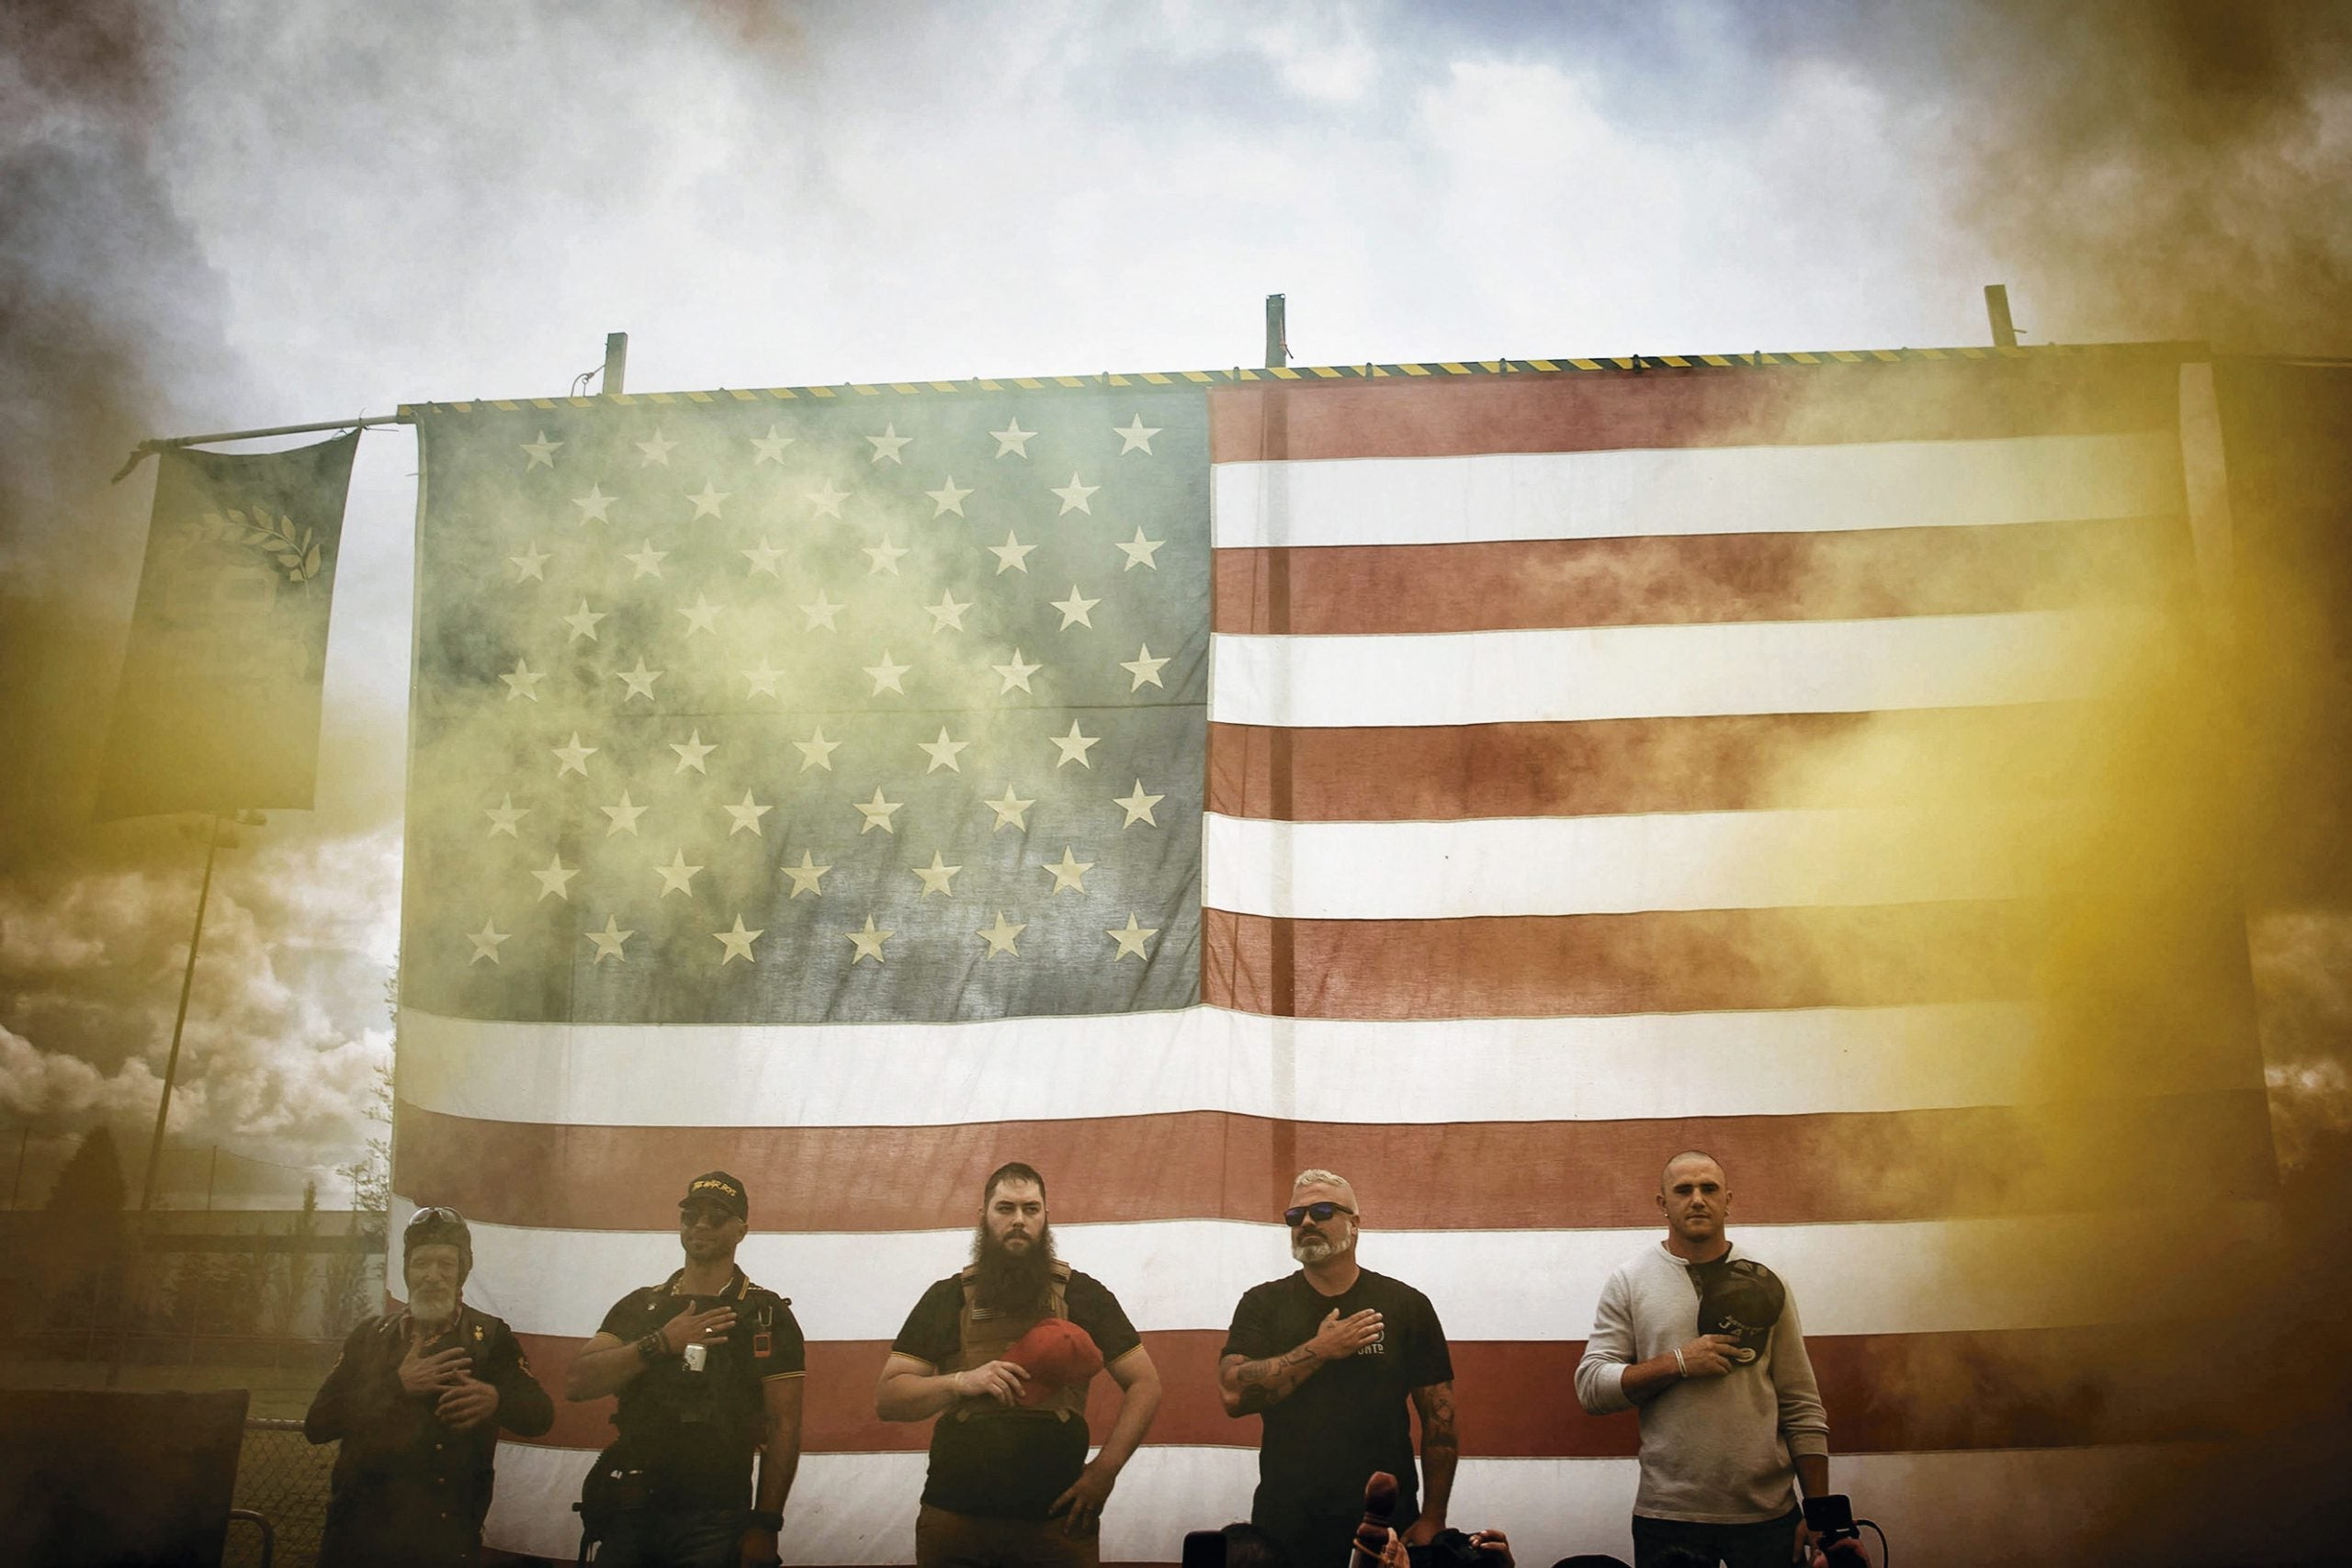 The rise of the Proud Boys in the US